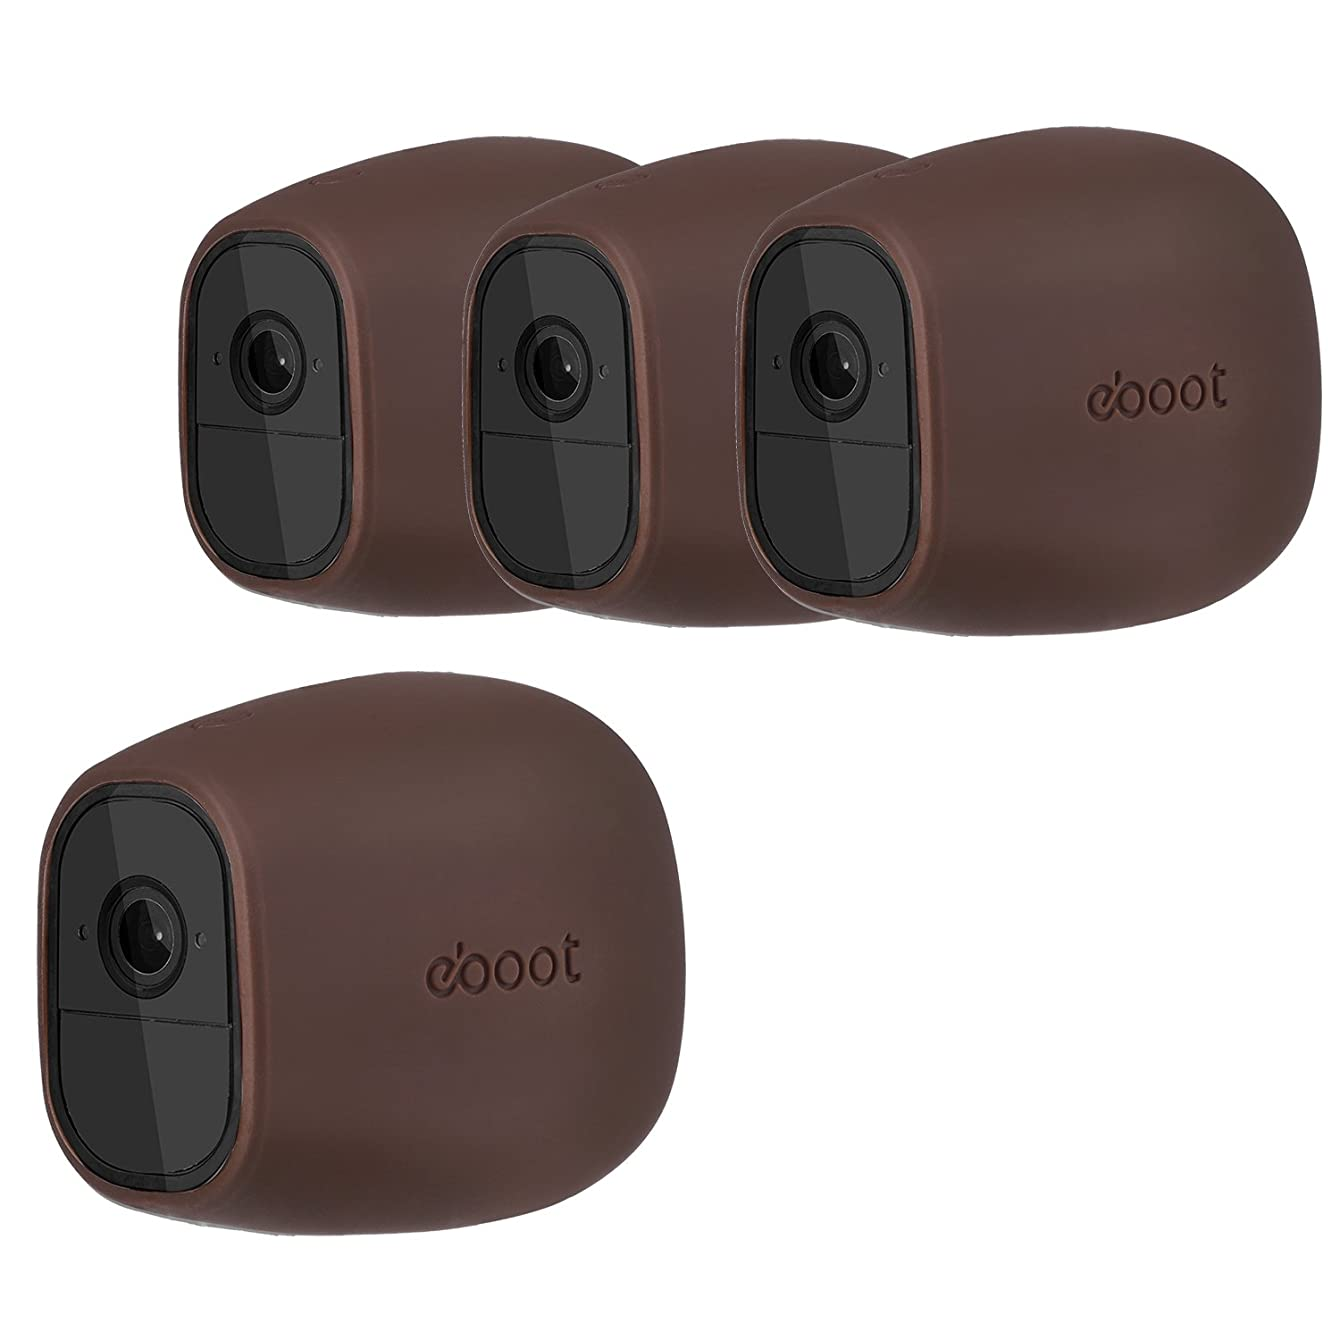 Silicone Skins Cover Protective Skin for Arlo Pro, Arlo Pro 2 Smart Security Wire-Free Cameras (4 Pack, Dark Brown)